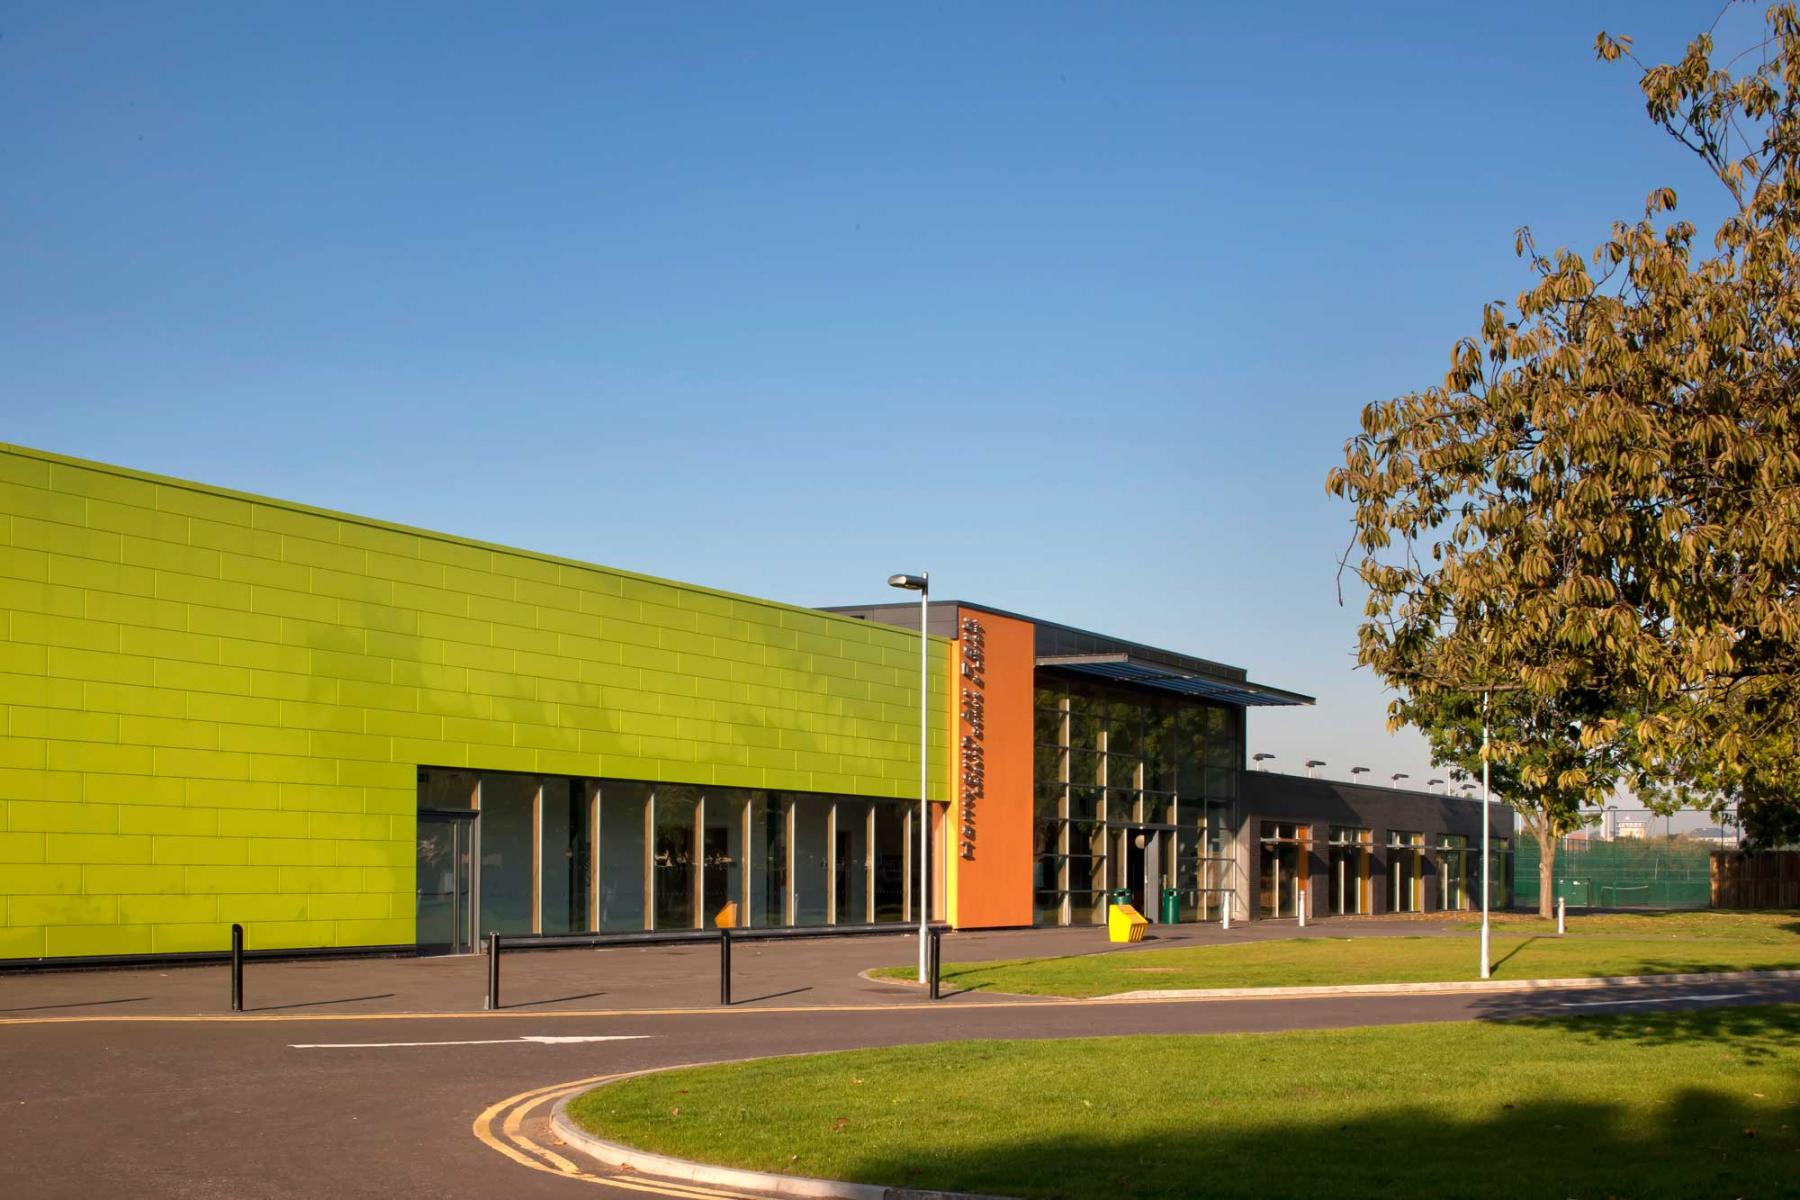 Hounslow Leisure Centres at Isleworth, Chiswick & Feltham - Exterior of Hanworth Air Park Leisure Centre